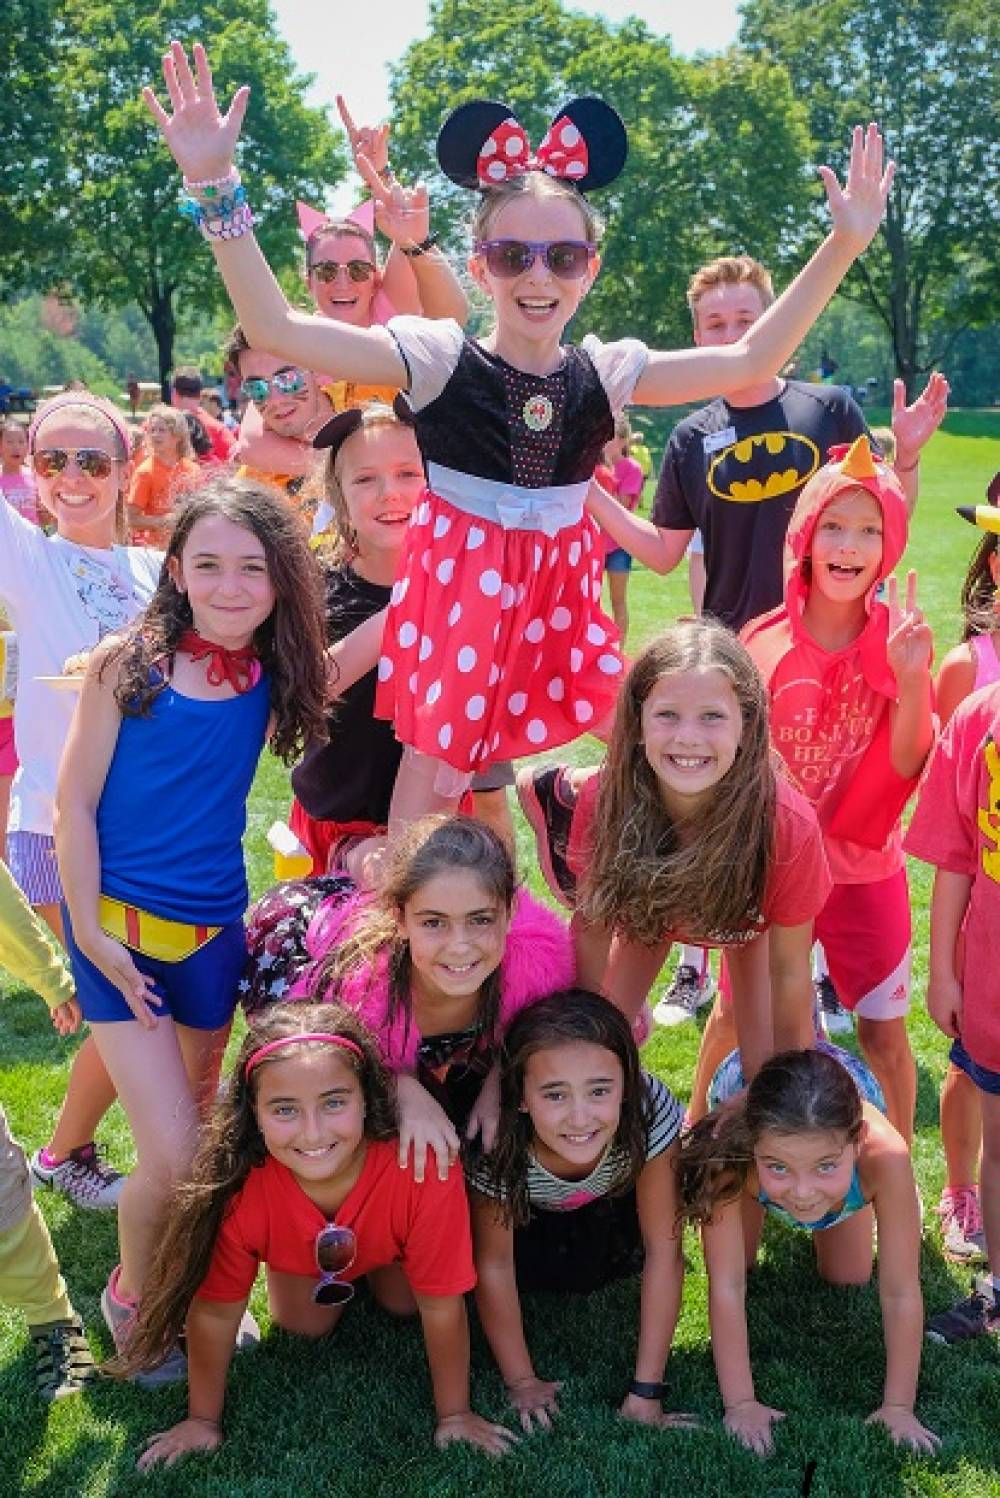 TOP MASSACHUSETTS SUMMER CAMP: Nobles Day Camp is a Top Summer Camp located in Dedham Massachusetts offering many fun and enriching camp programs.